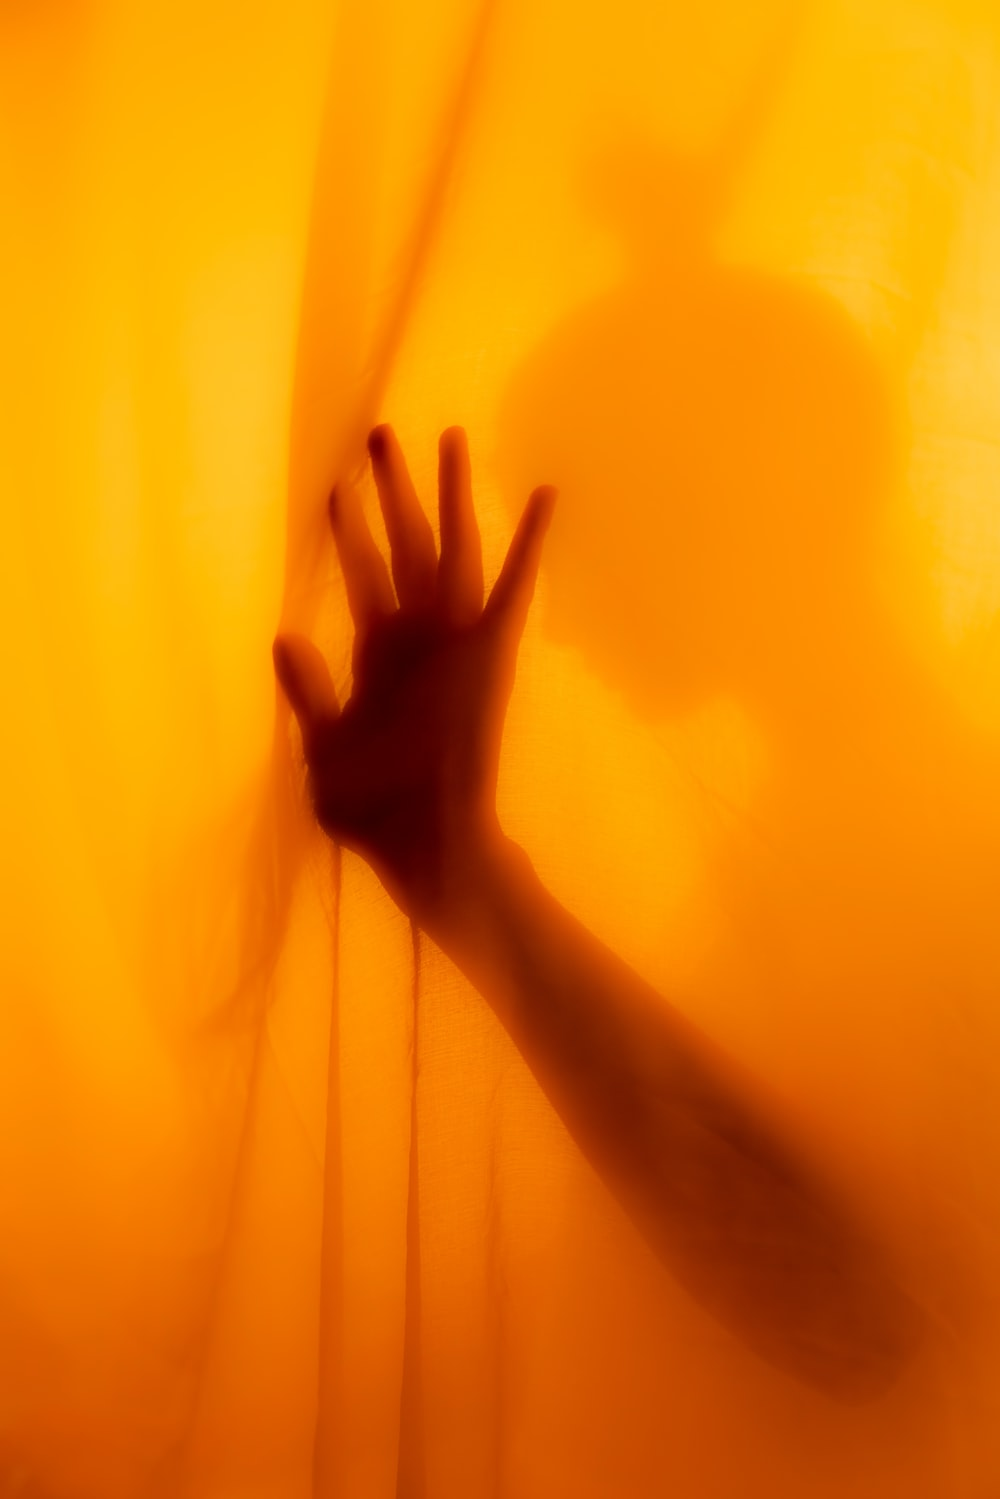 persons hand on yellow textile